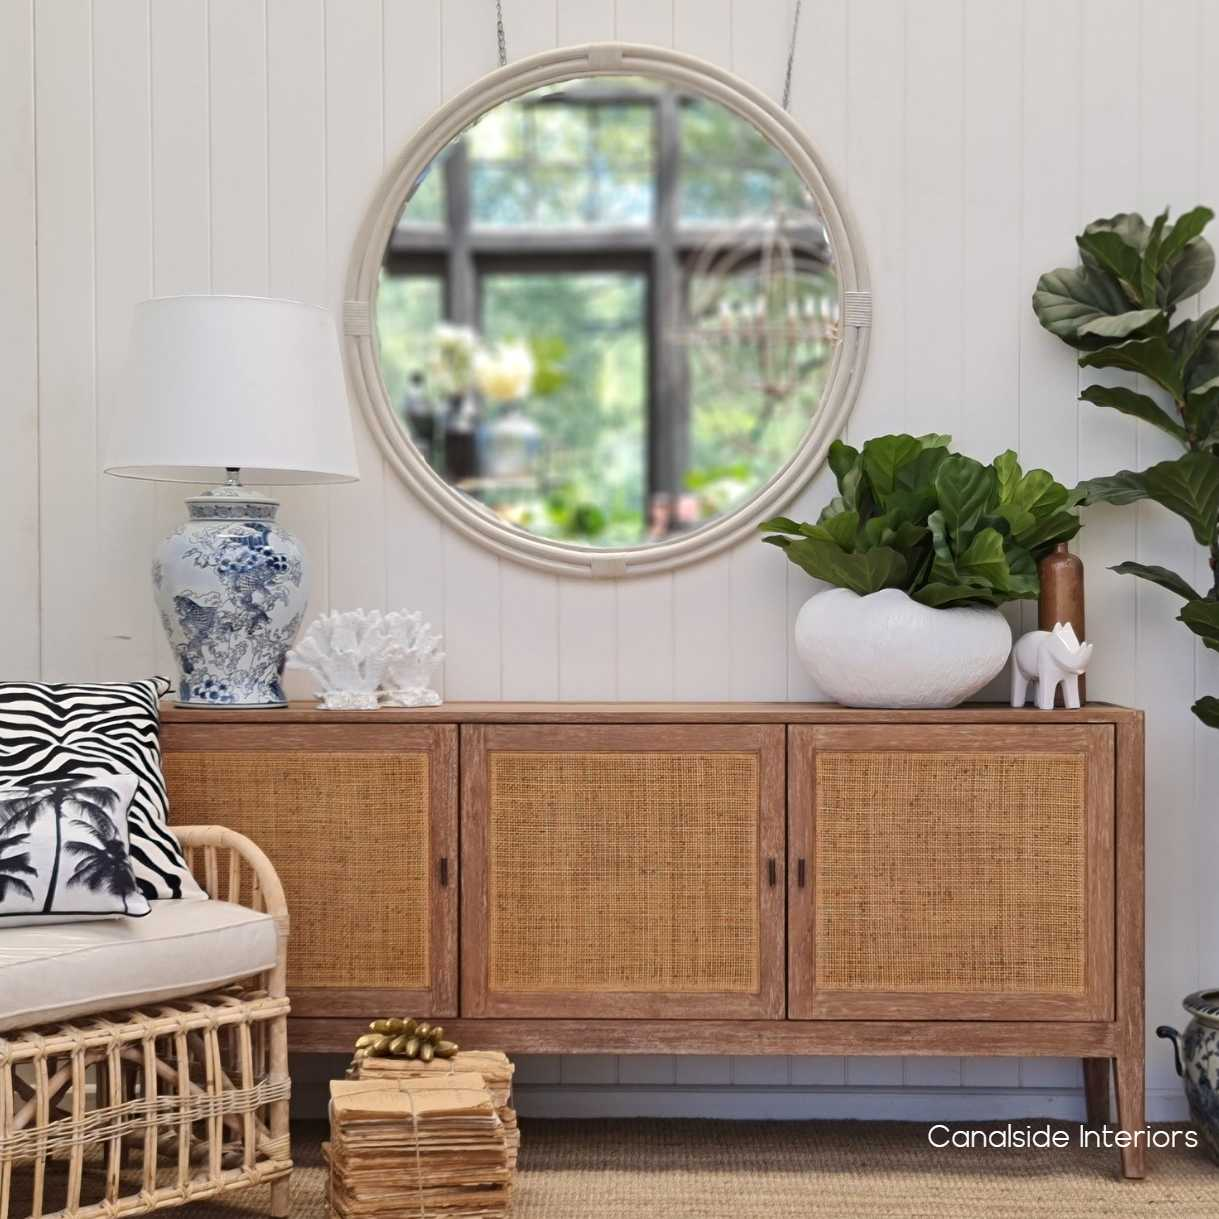 Pacifica Rattan TV Sideboard  Media Unit HAMPTONS Style, PLANTATION Style, LIVING Room, LIVING TV Media & Storage, TABLES Sideboards & Buffets, STORAGE, Sideboards & Buffets, Rattan, island style, chinoiserie, british colonial, coastal